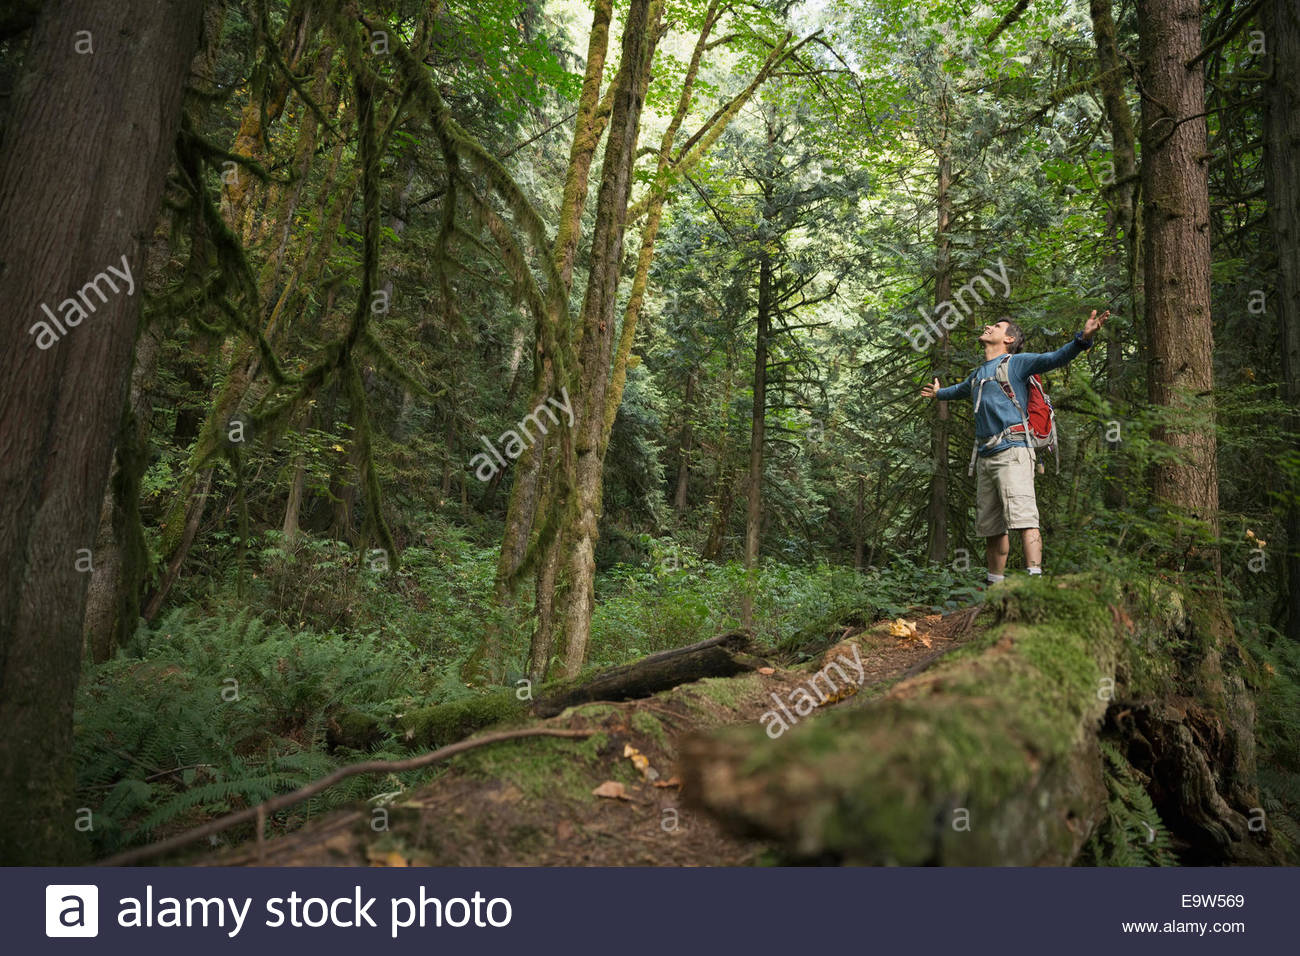 Man with arms outstretched on trail in woods - Stock Image